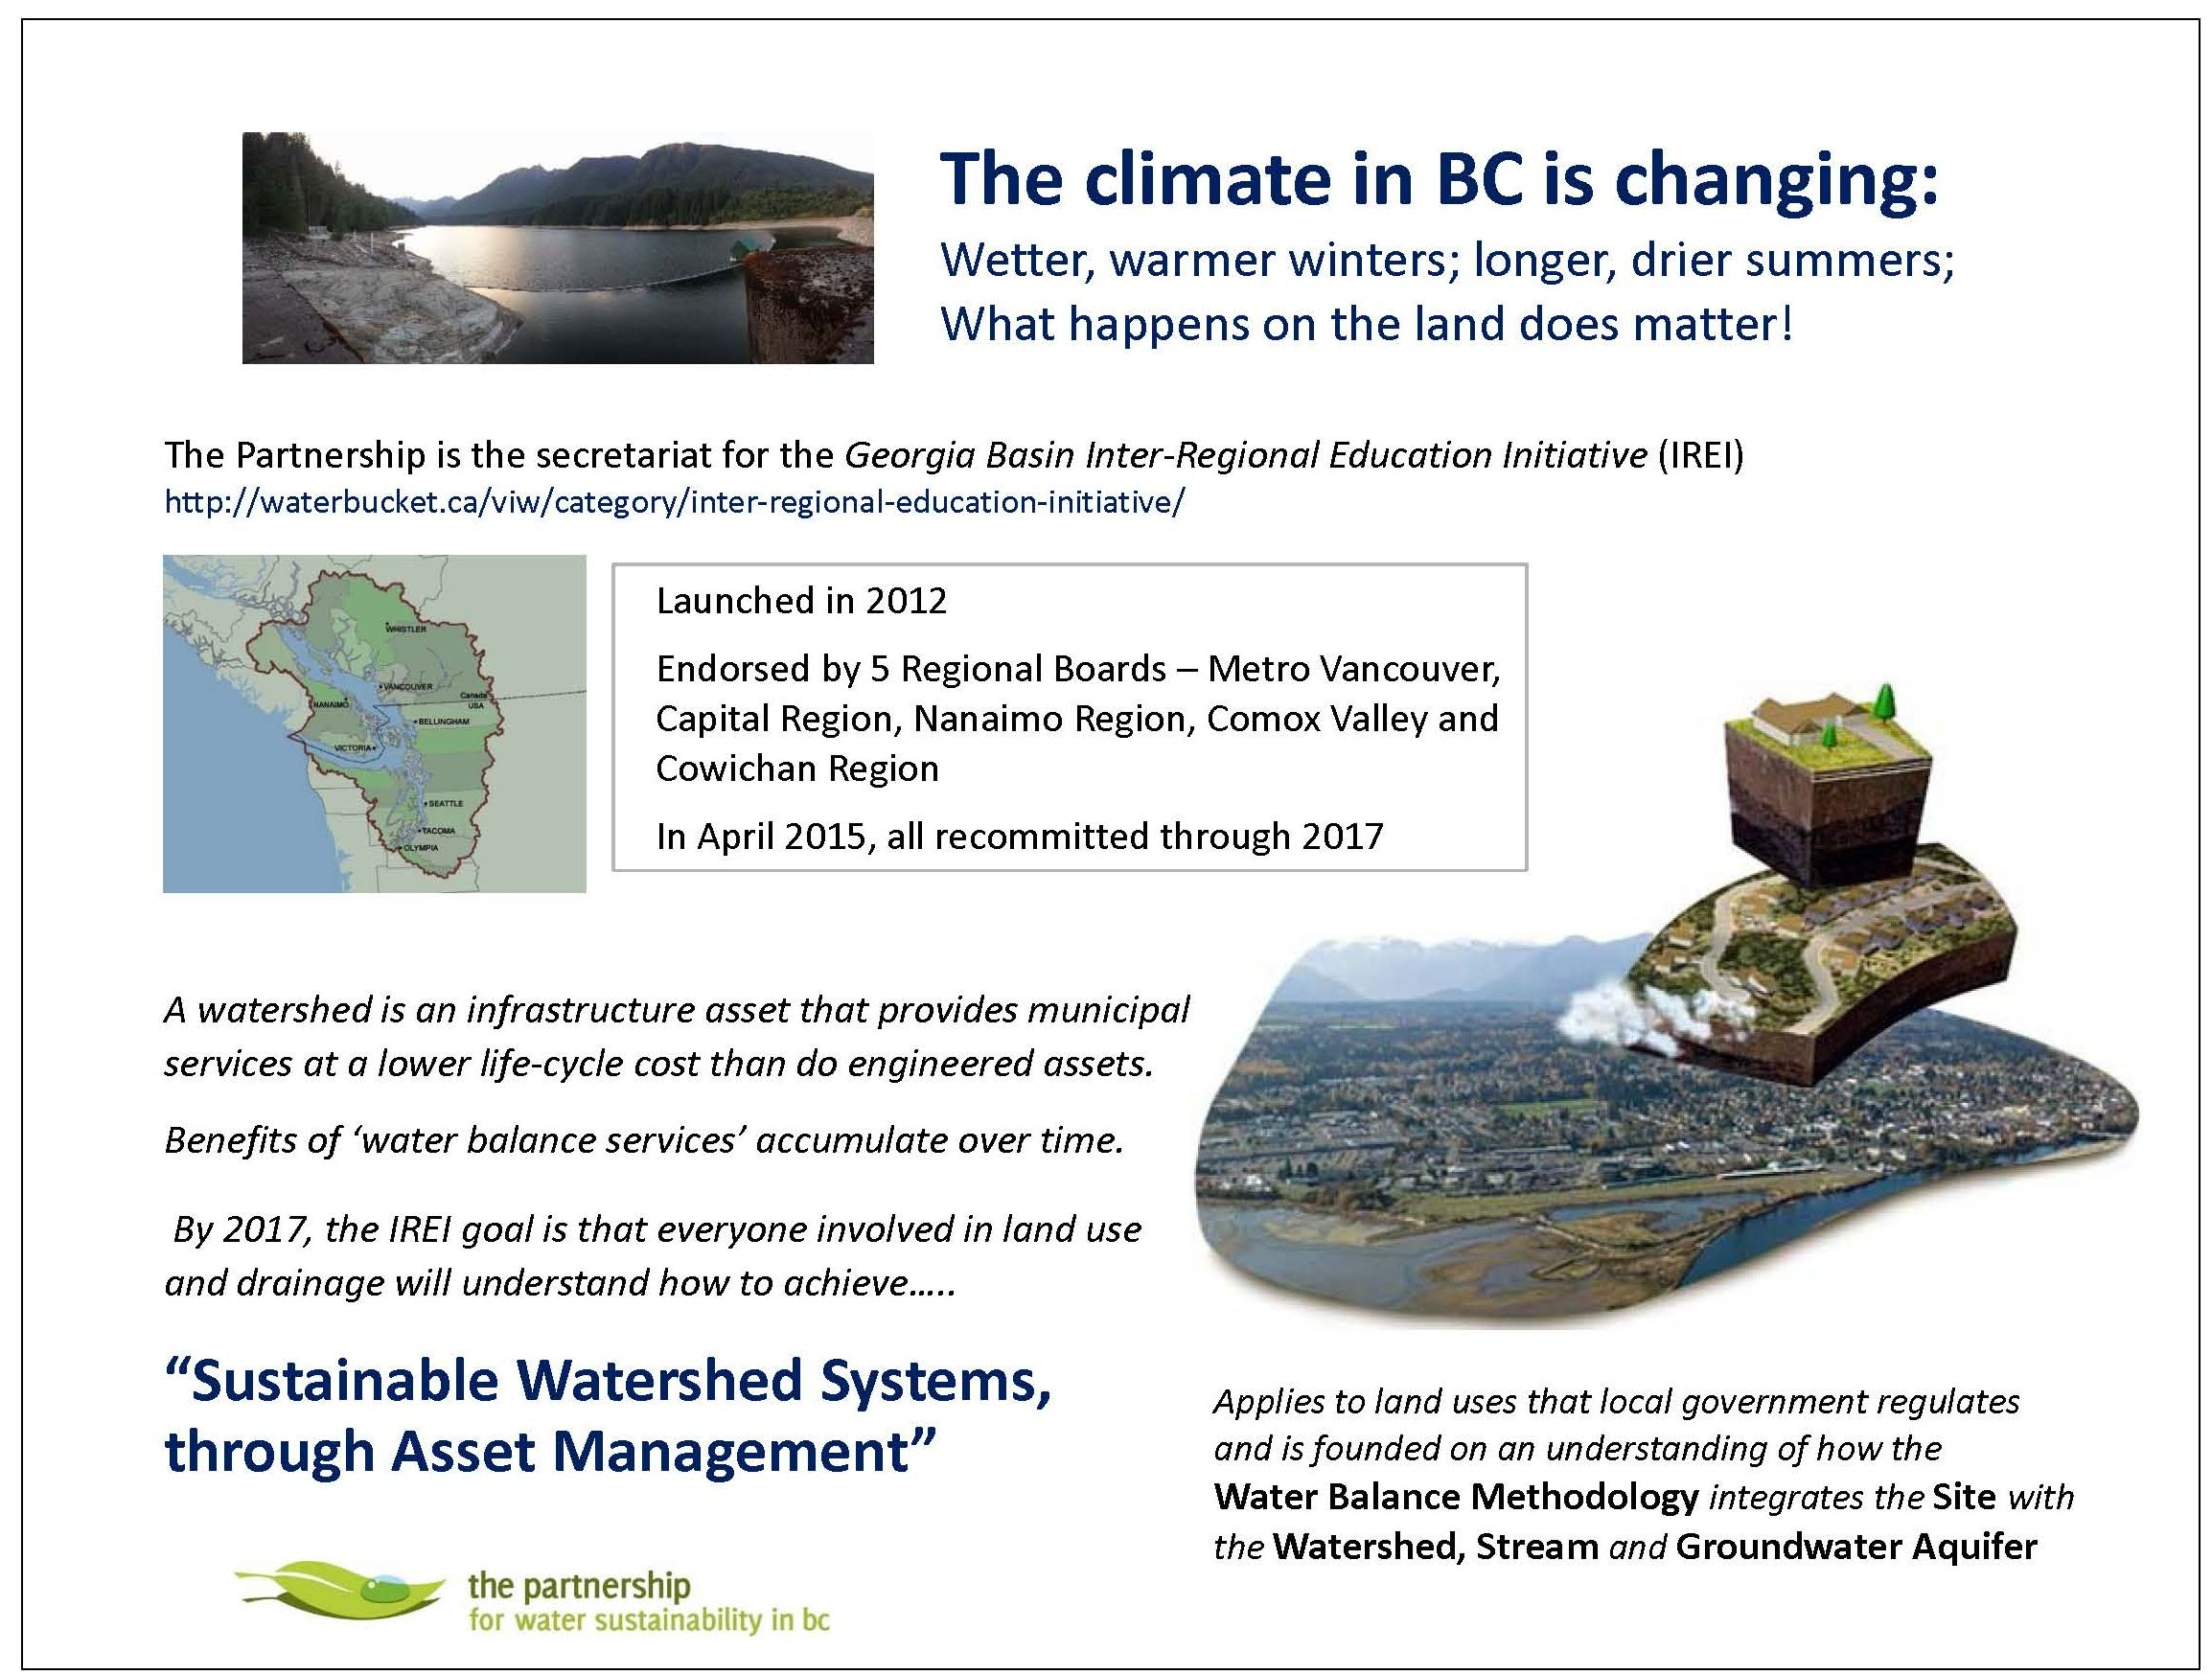 climate-is-changing_nov2015